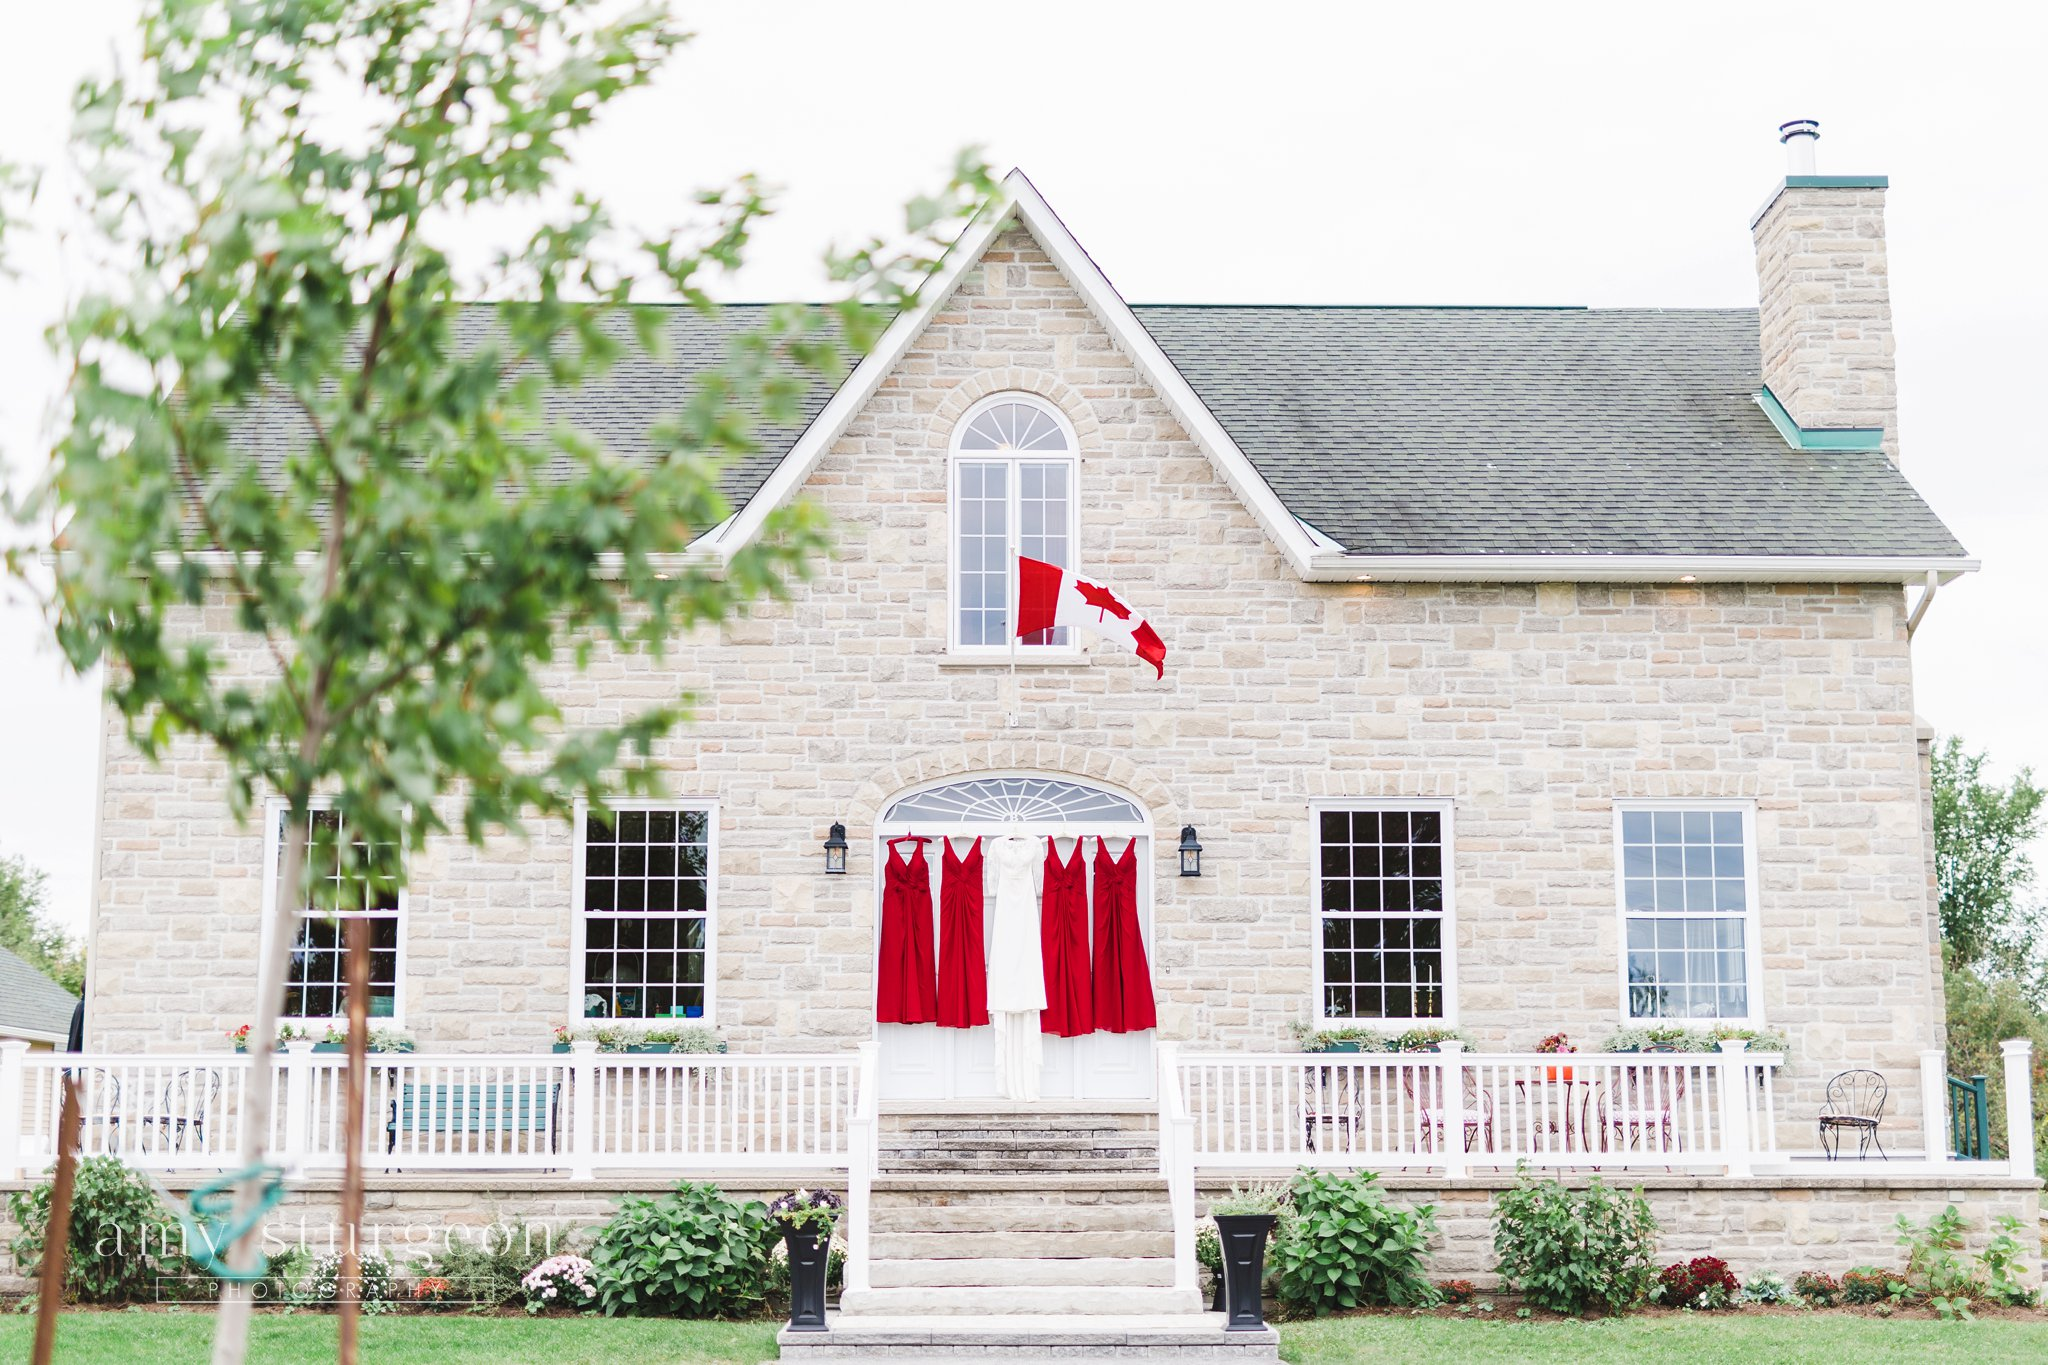 The crimson bridesmaid dresses matched the red in the Canada flag at the alpaca farm wedding in ottawa